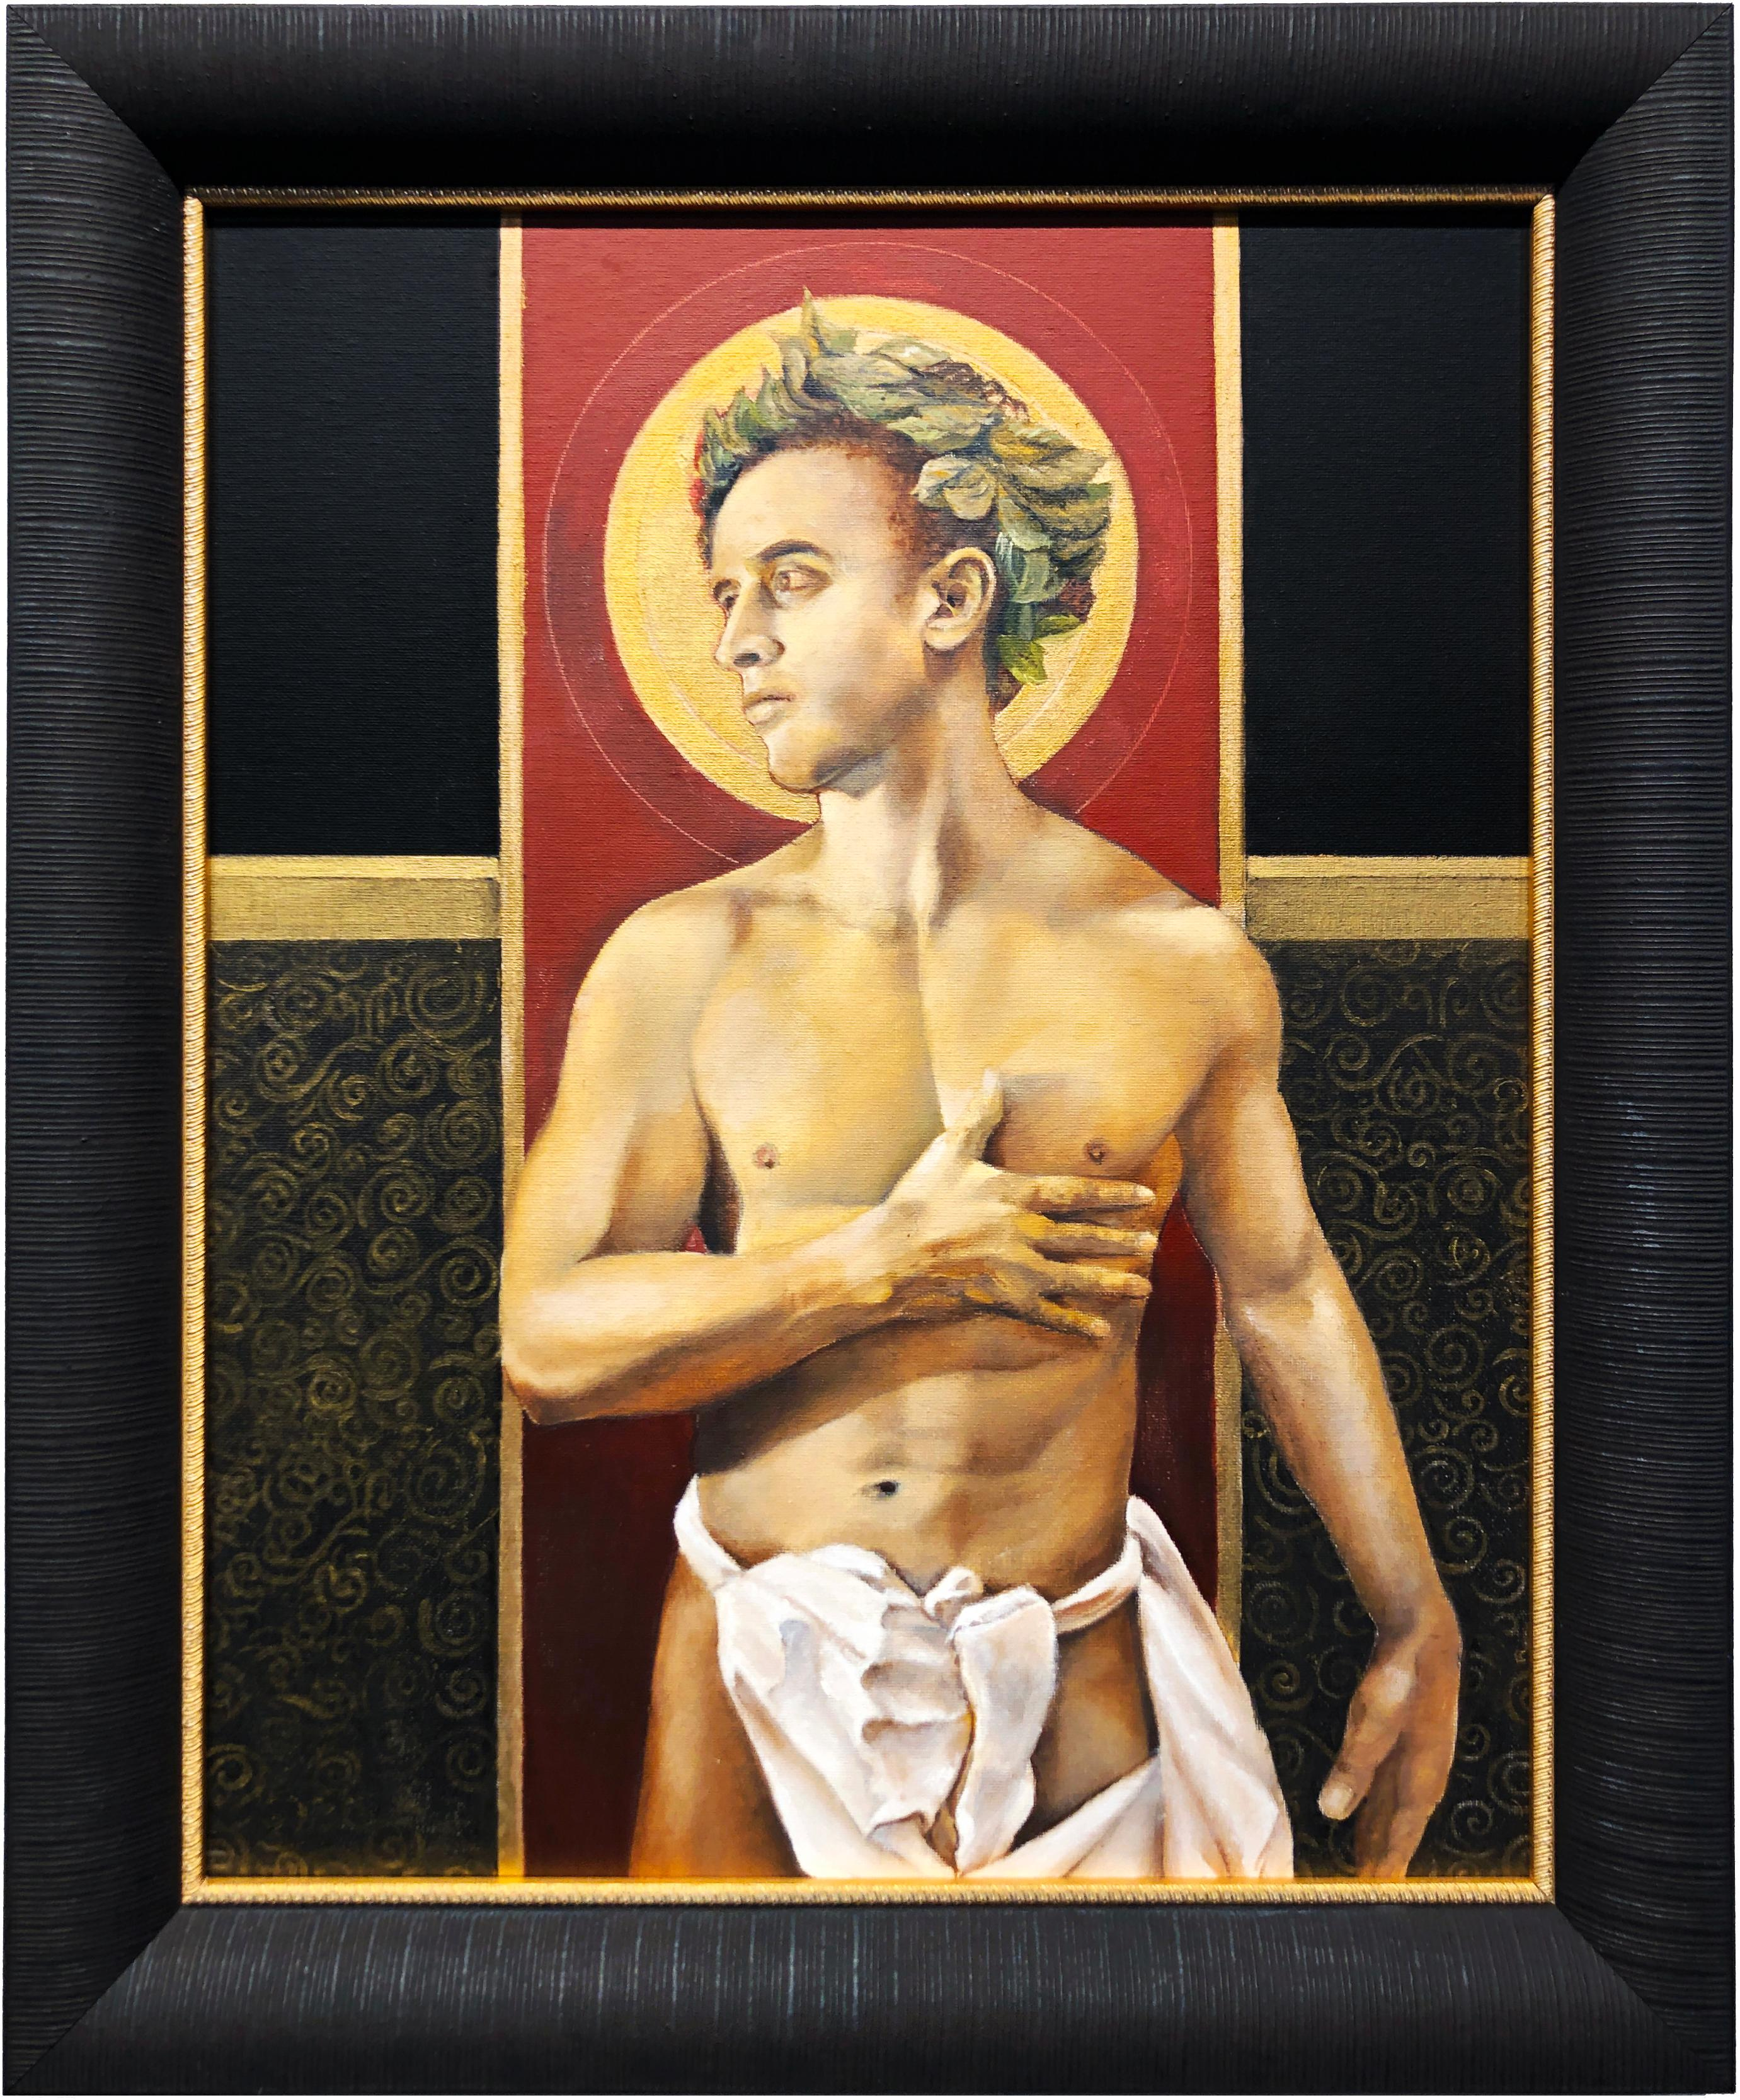 Saint Dante - Nude Male w/ Halo, Gazing to the Side, Black, Gold, Red Background